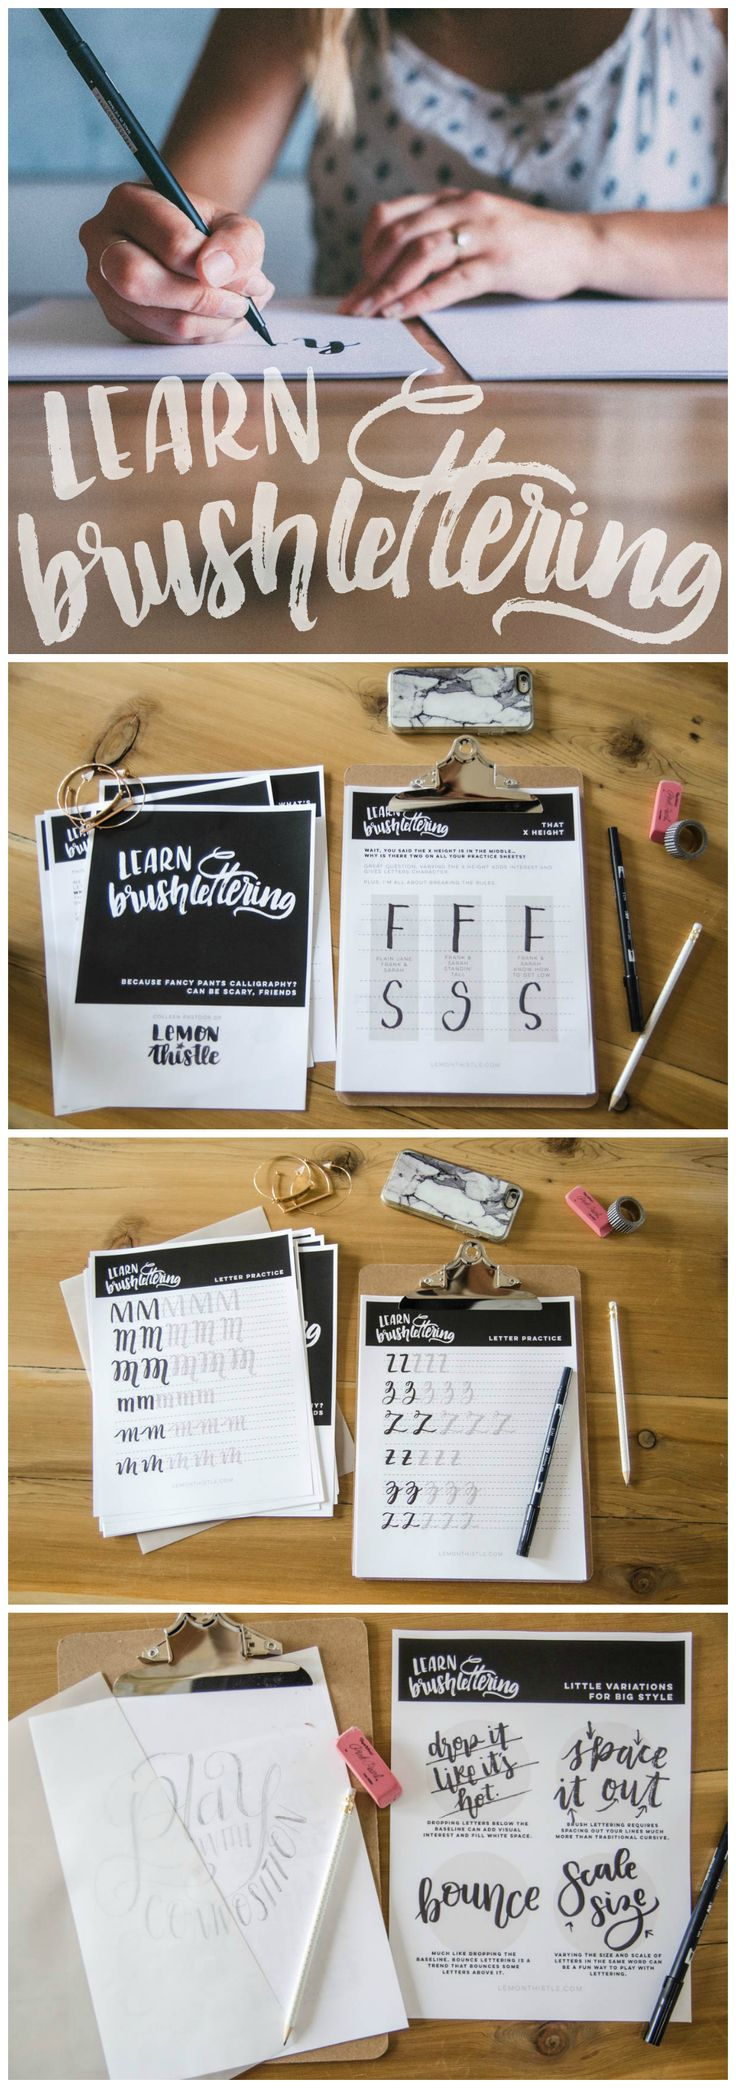 Learn Brushlettering from the comfort of your home. DIY brush lettering is a step by step tutorial for brush script.